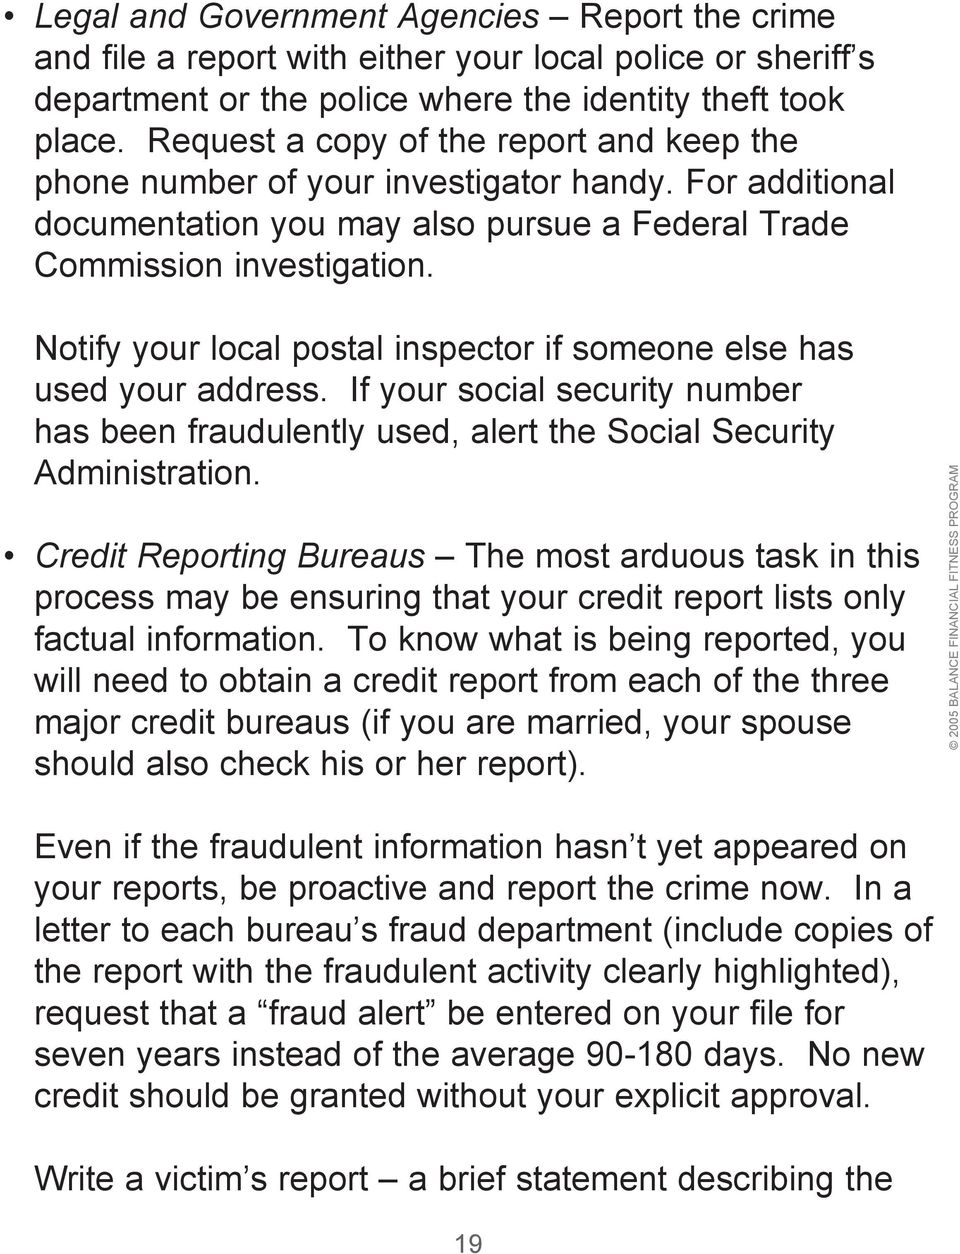 Notify your local postal inspector if someone else has used your address. If your social security number has been fraudulently used, alert the Social Security Administration.